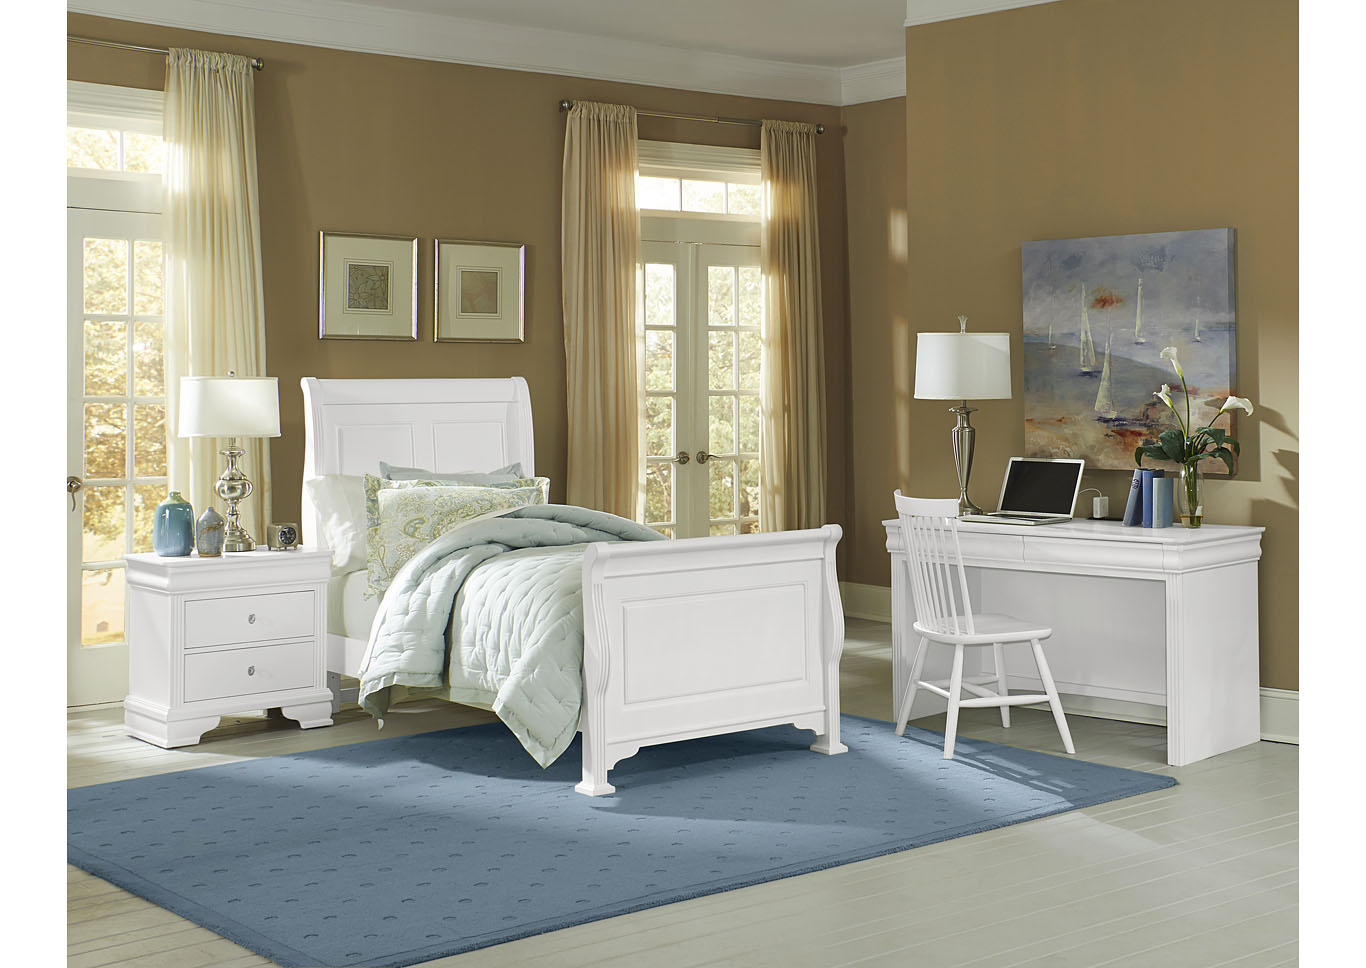 French Market Soft White Full Poster Bed w/ Desk and Chair,Vaughan-Bassett